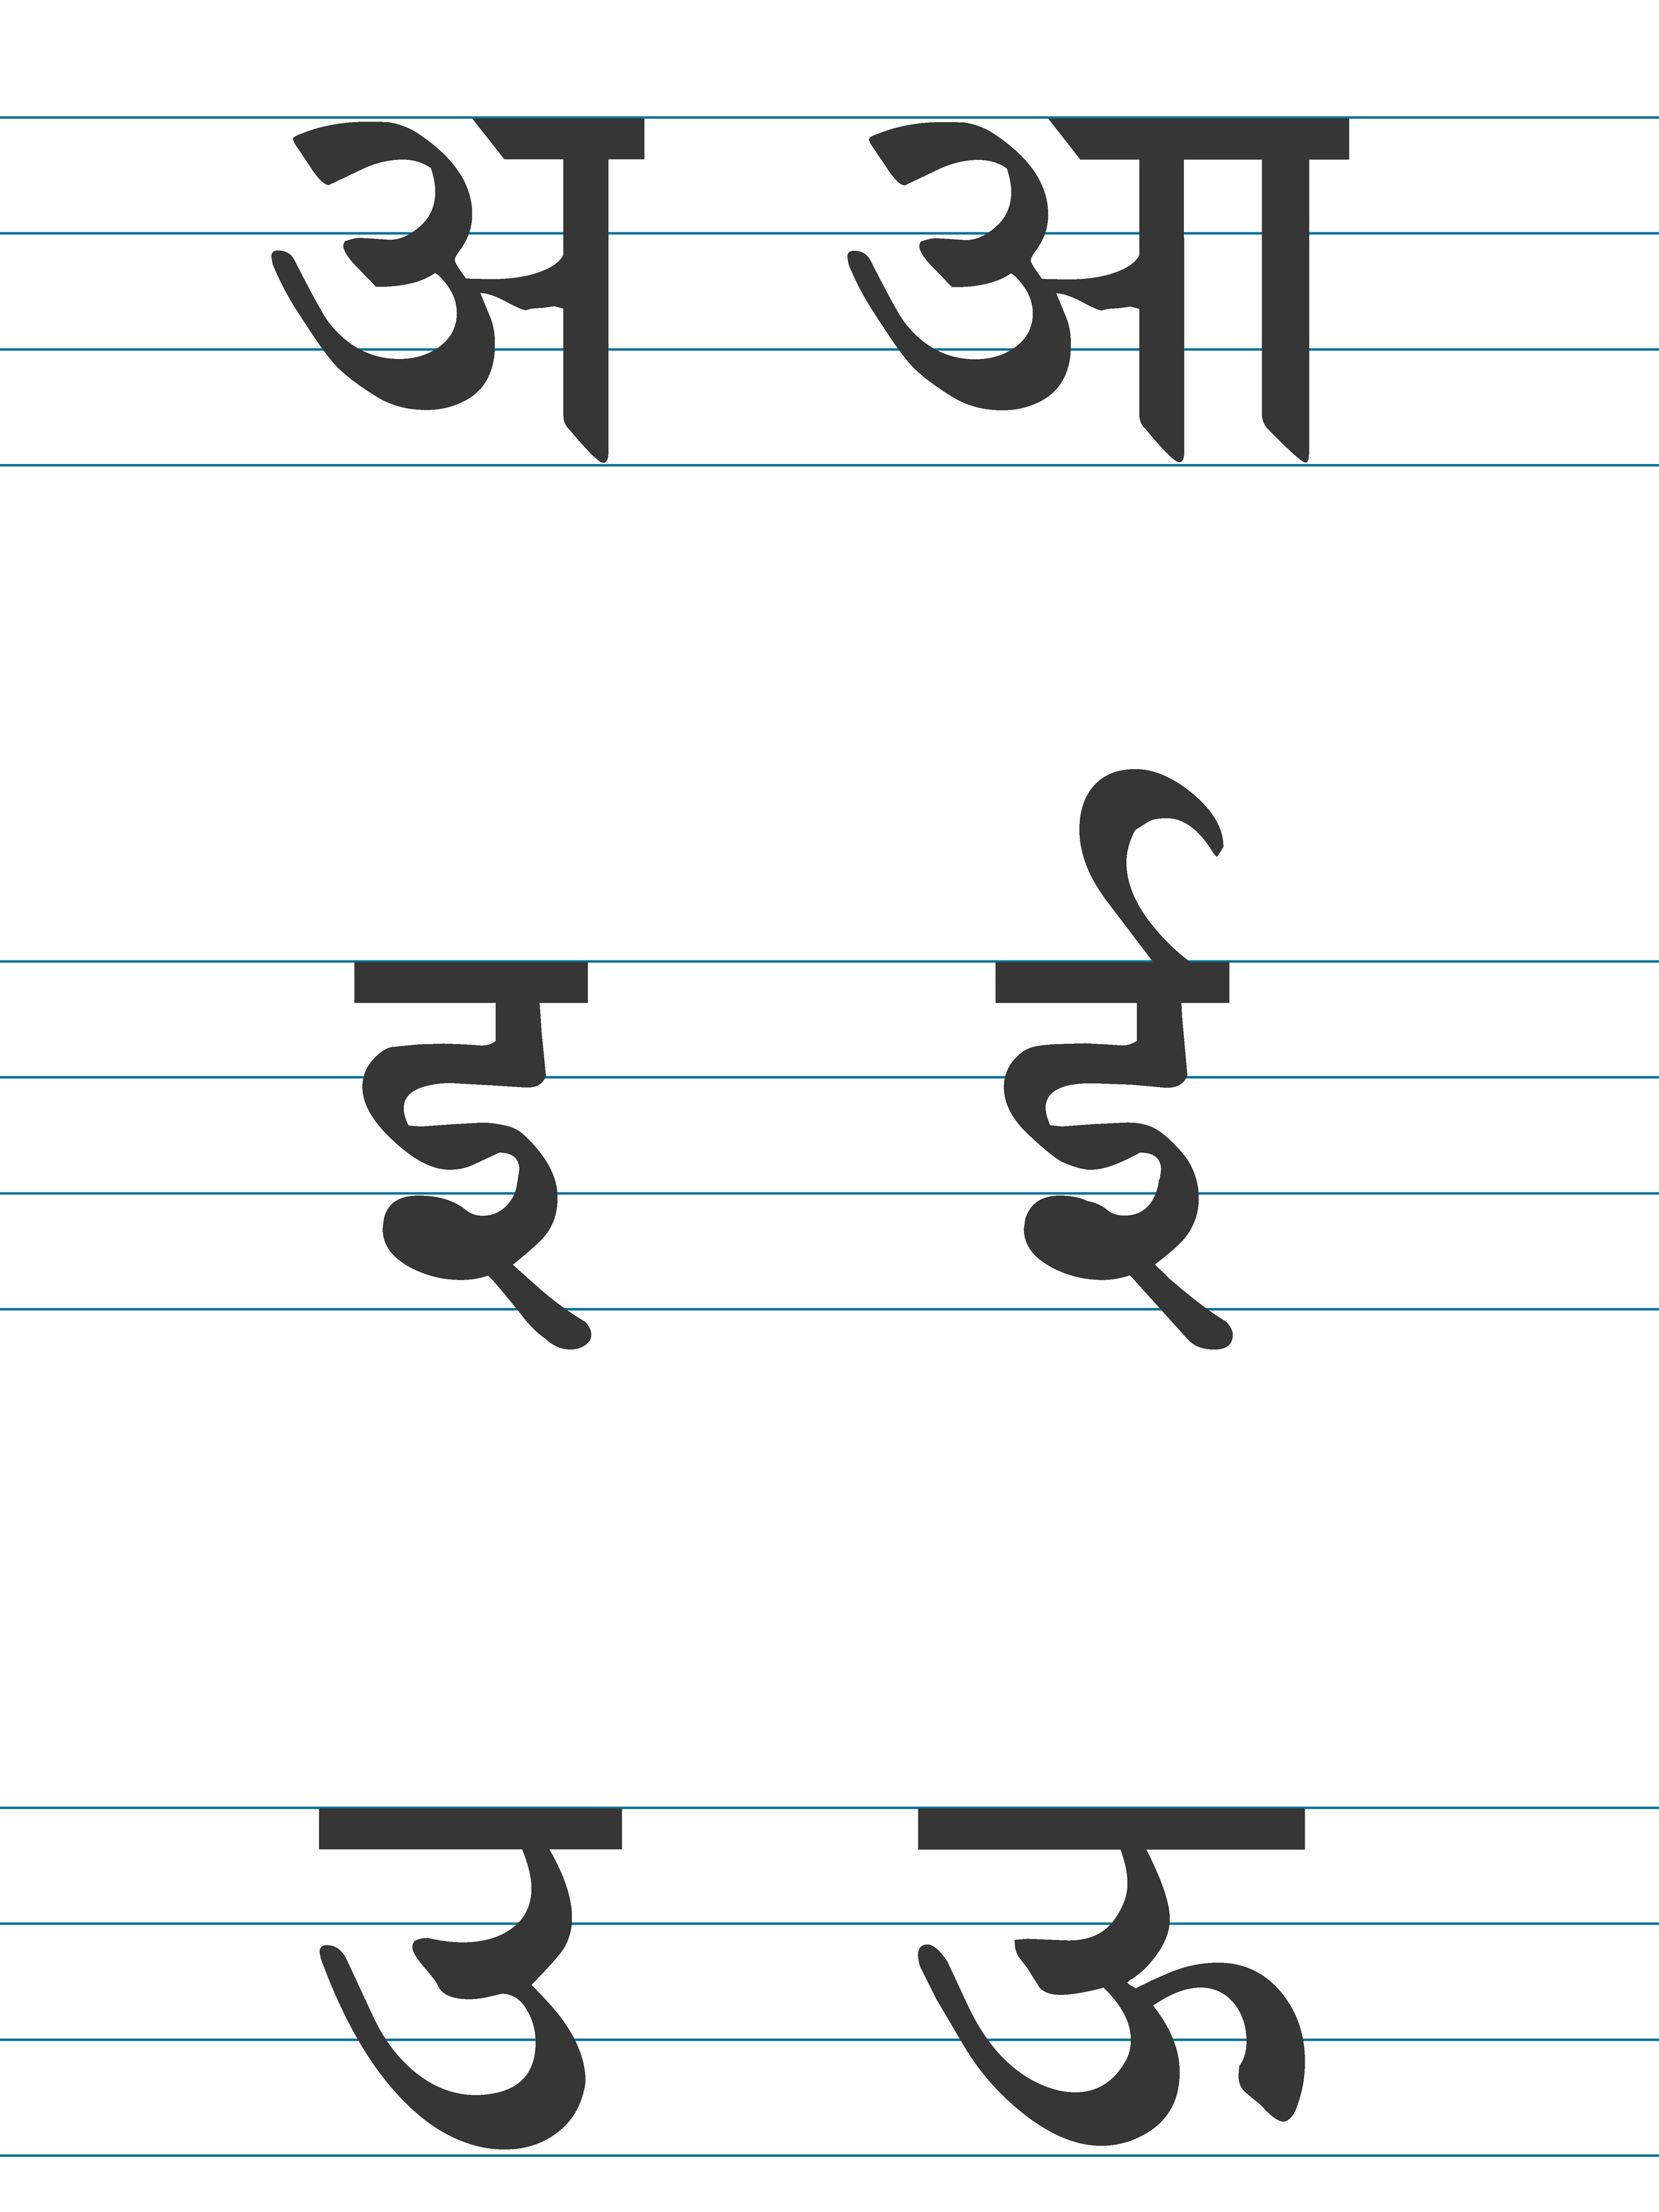 1A8-writing-primary-vowels.png